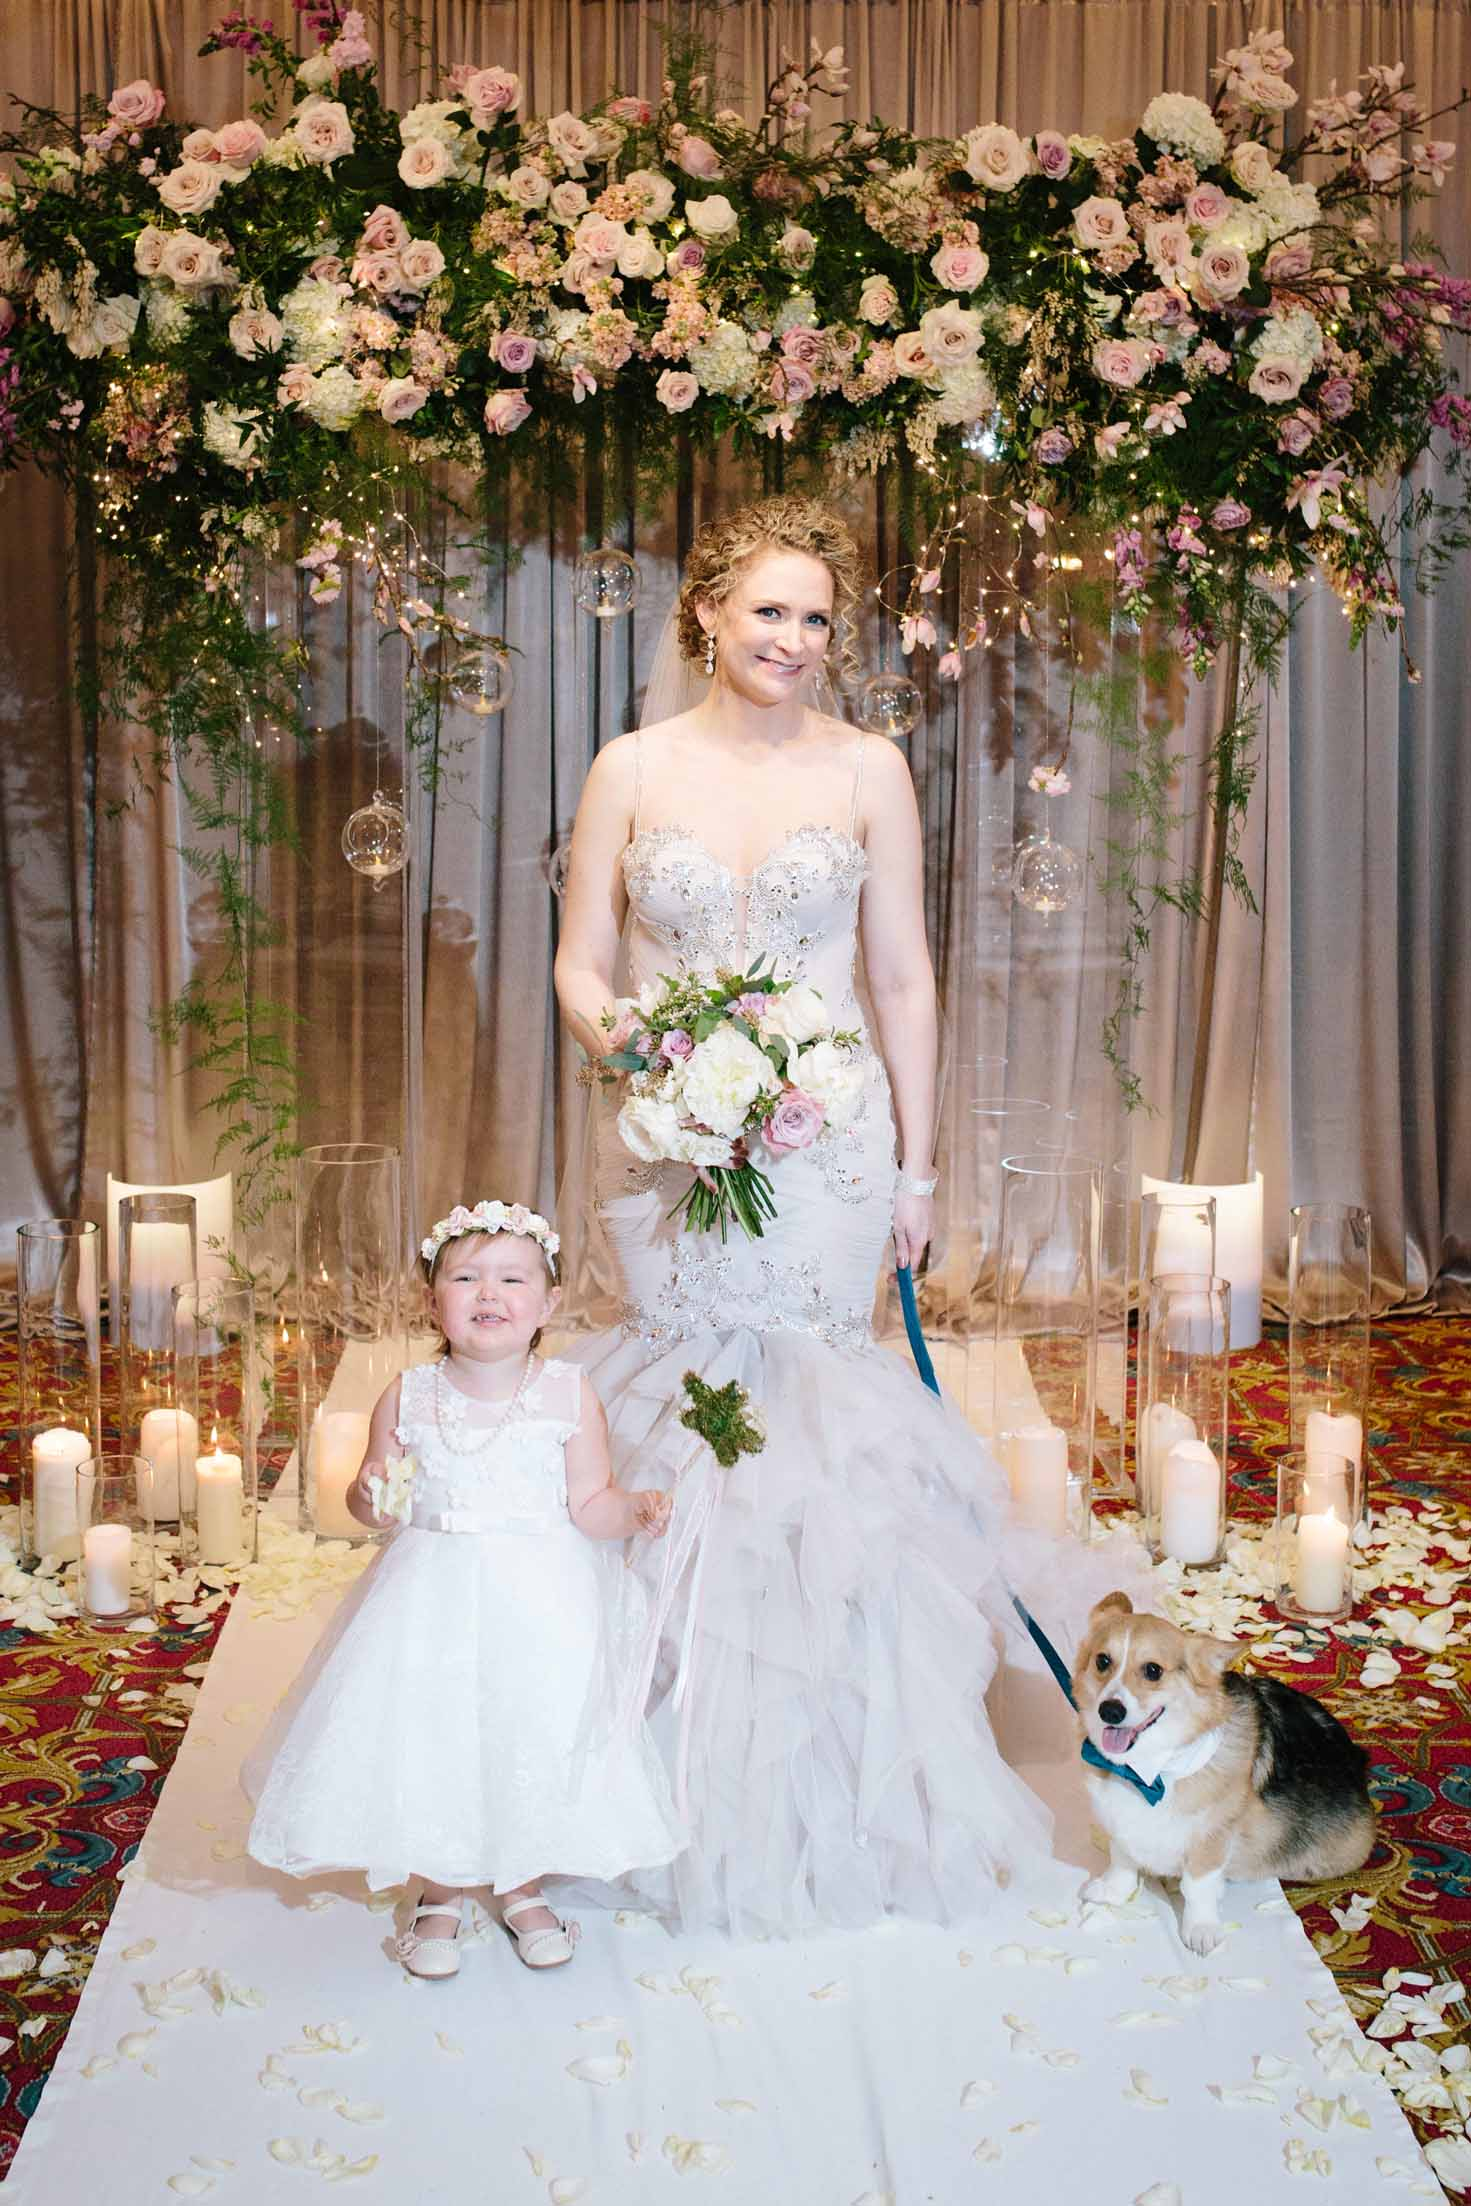 Bride standing with flower girl and dog in front of lush floral ceremony arch surrounded by candles